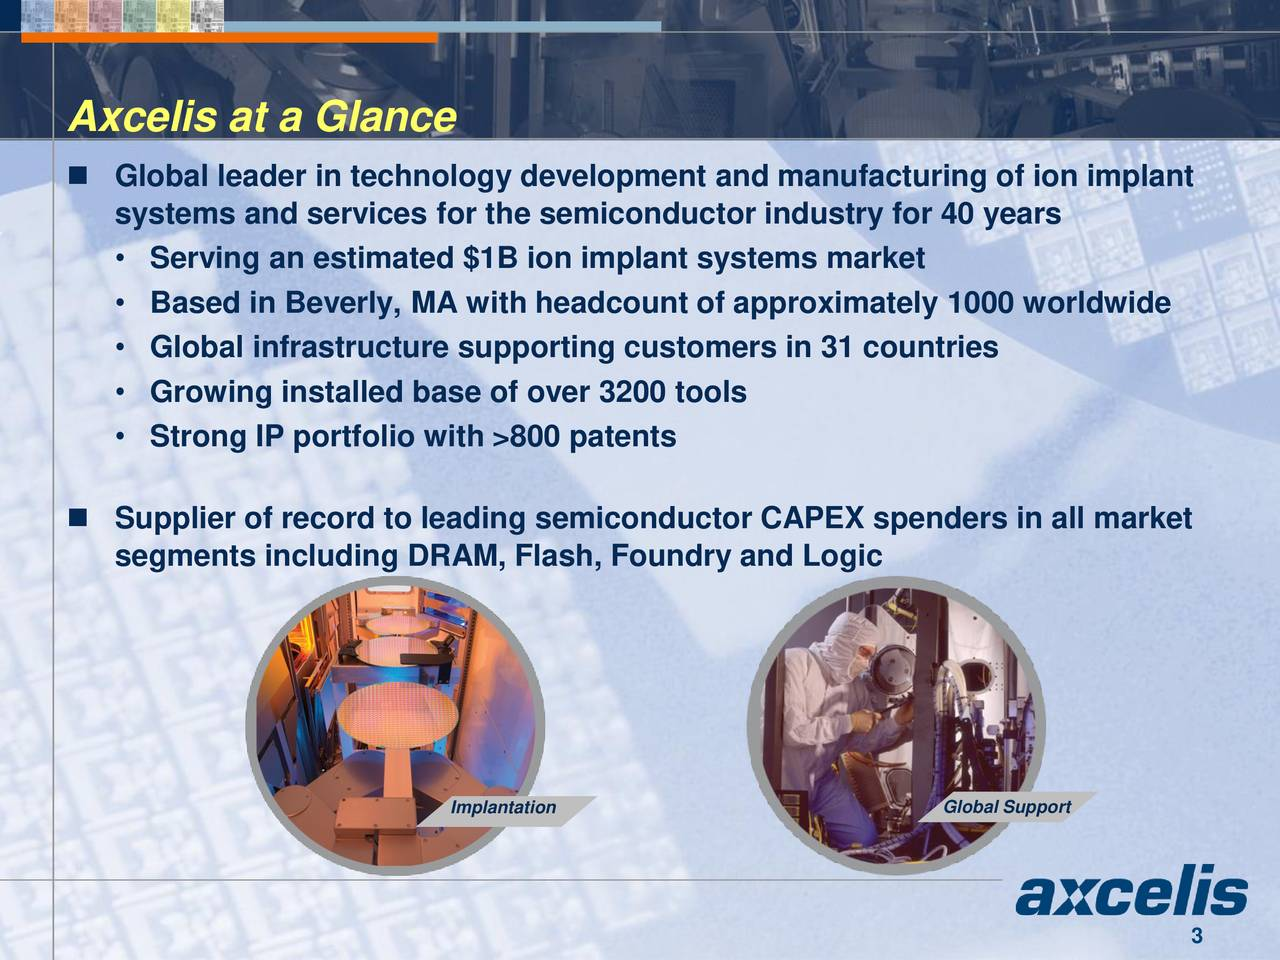  Global leader in technology development and manufacturing of ion implant systems and services for the semiconductor industry for 40 years • Serving an estimated $1B ion implant systems market • Based in Beverly, MA with headcount of approximately 1000 worldwide • Global infrastructure supporting customers in 31 countries • Growing installed base of over 3200 tools • Strong IP portfolio with >800 patents  Supplier of record to leading semiconductor CAPEX spenders in all market segments including DRAM, Flash, Foundry and Logic Implantation Global Support 3